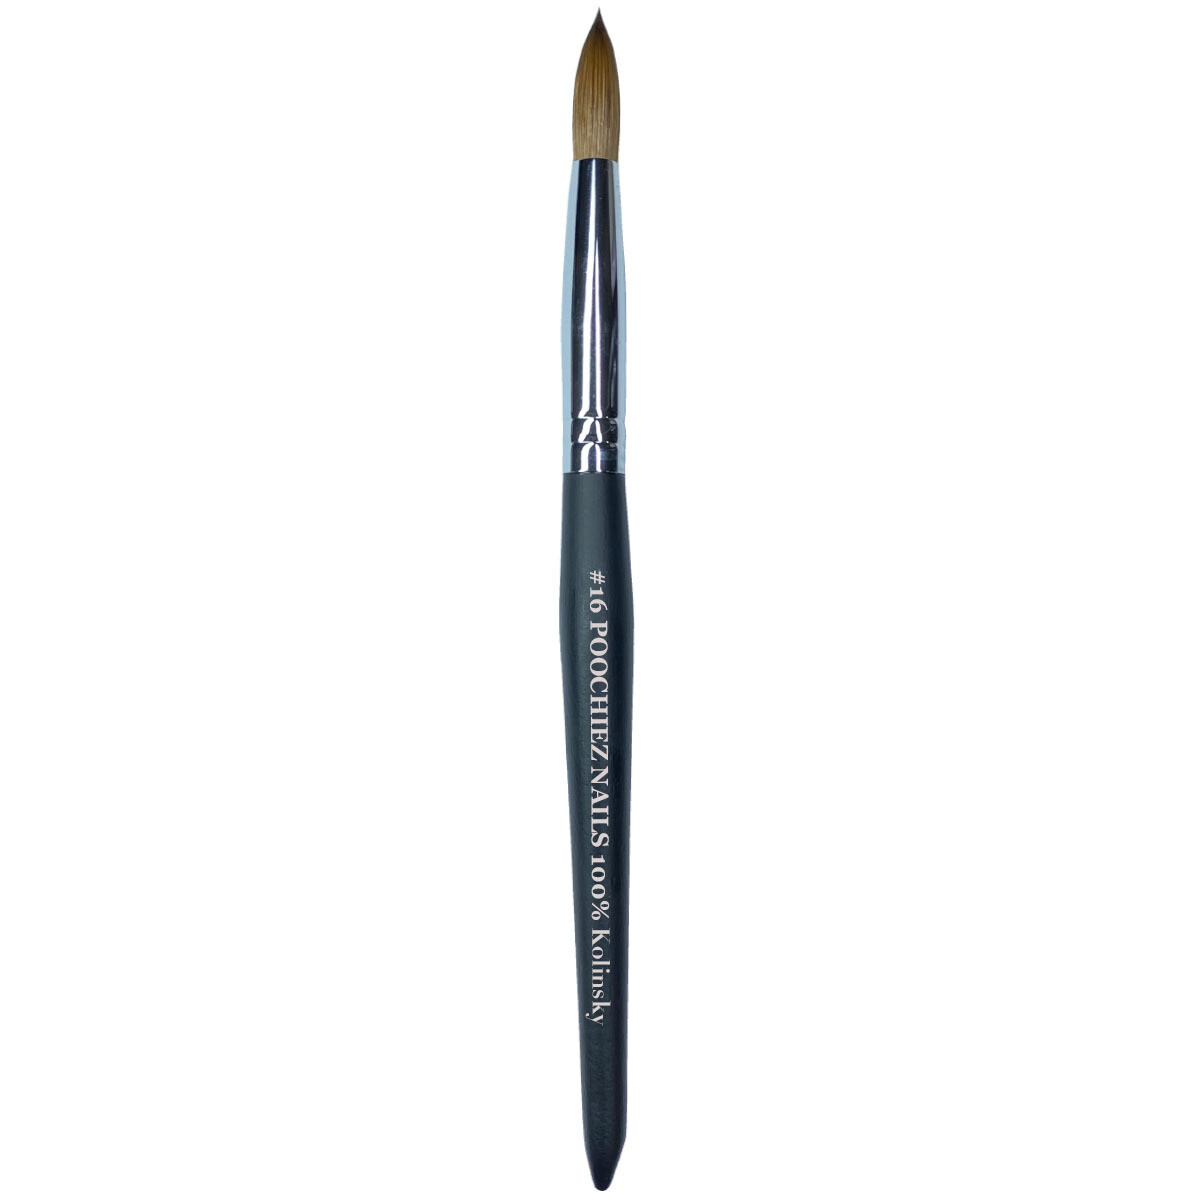 #16 POOCHIEZ NAILS ACRYLIC BRUSH (PINCHED)